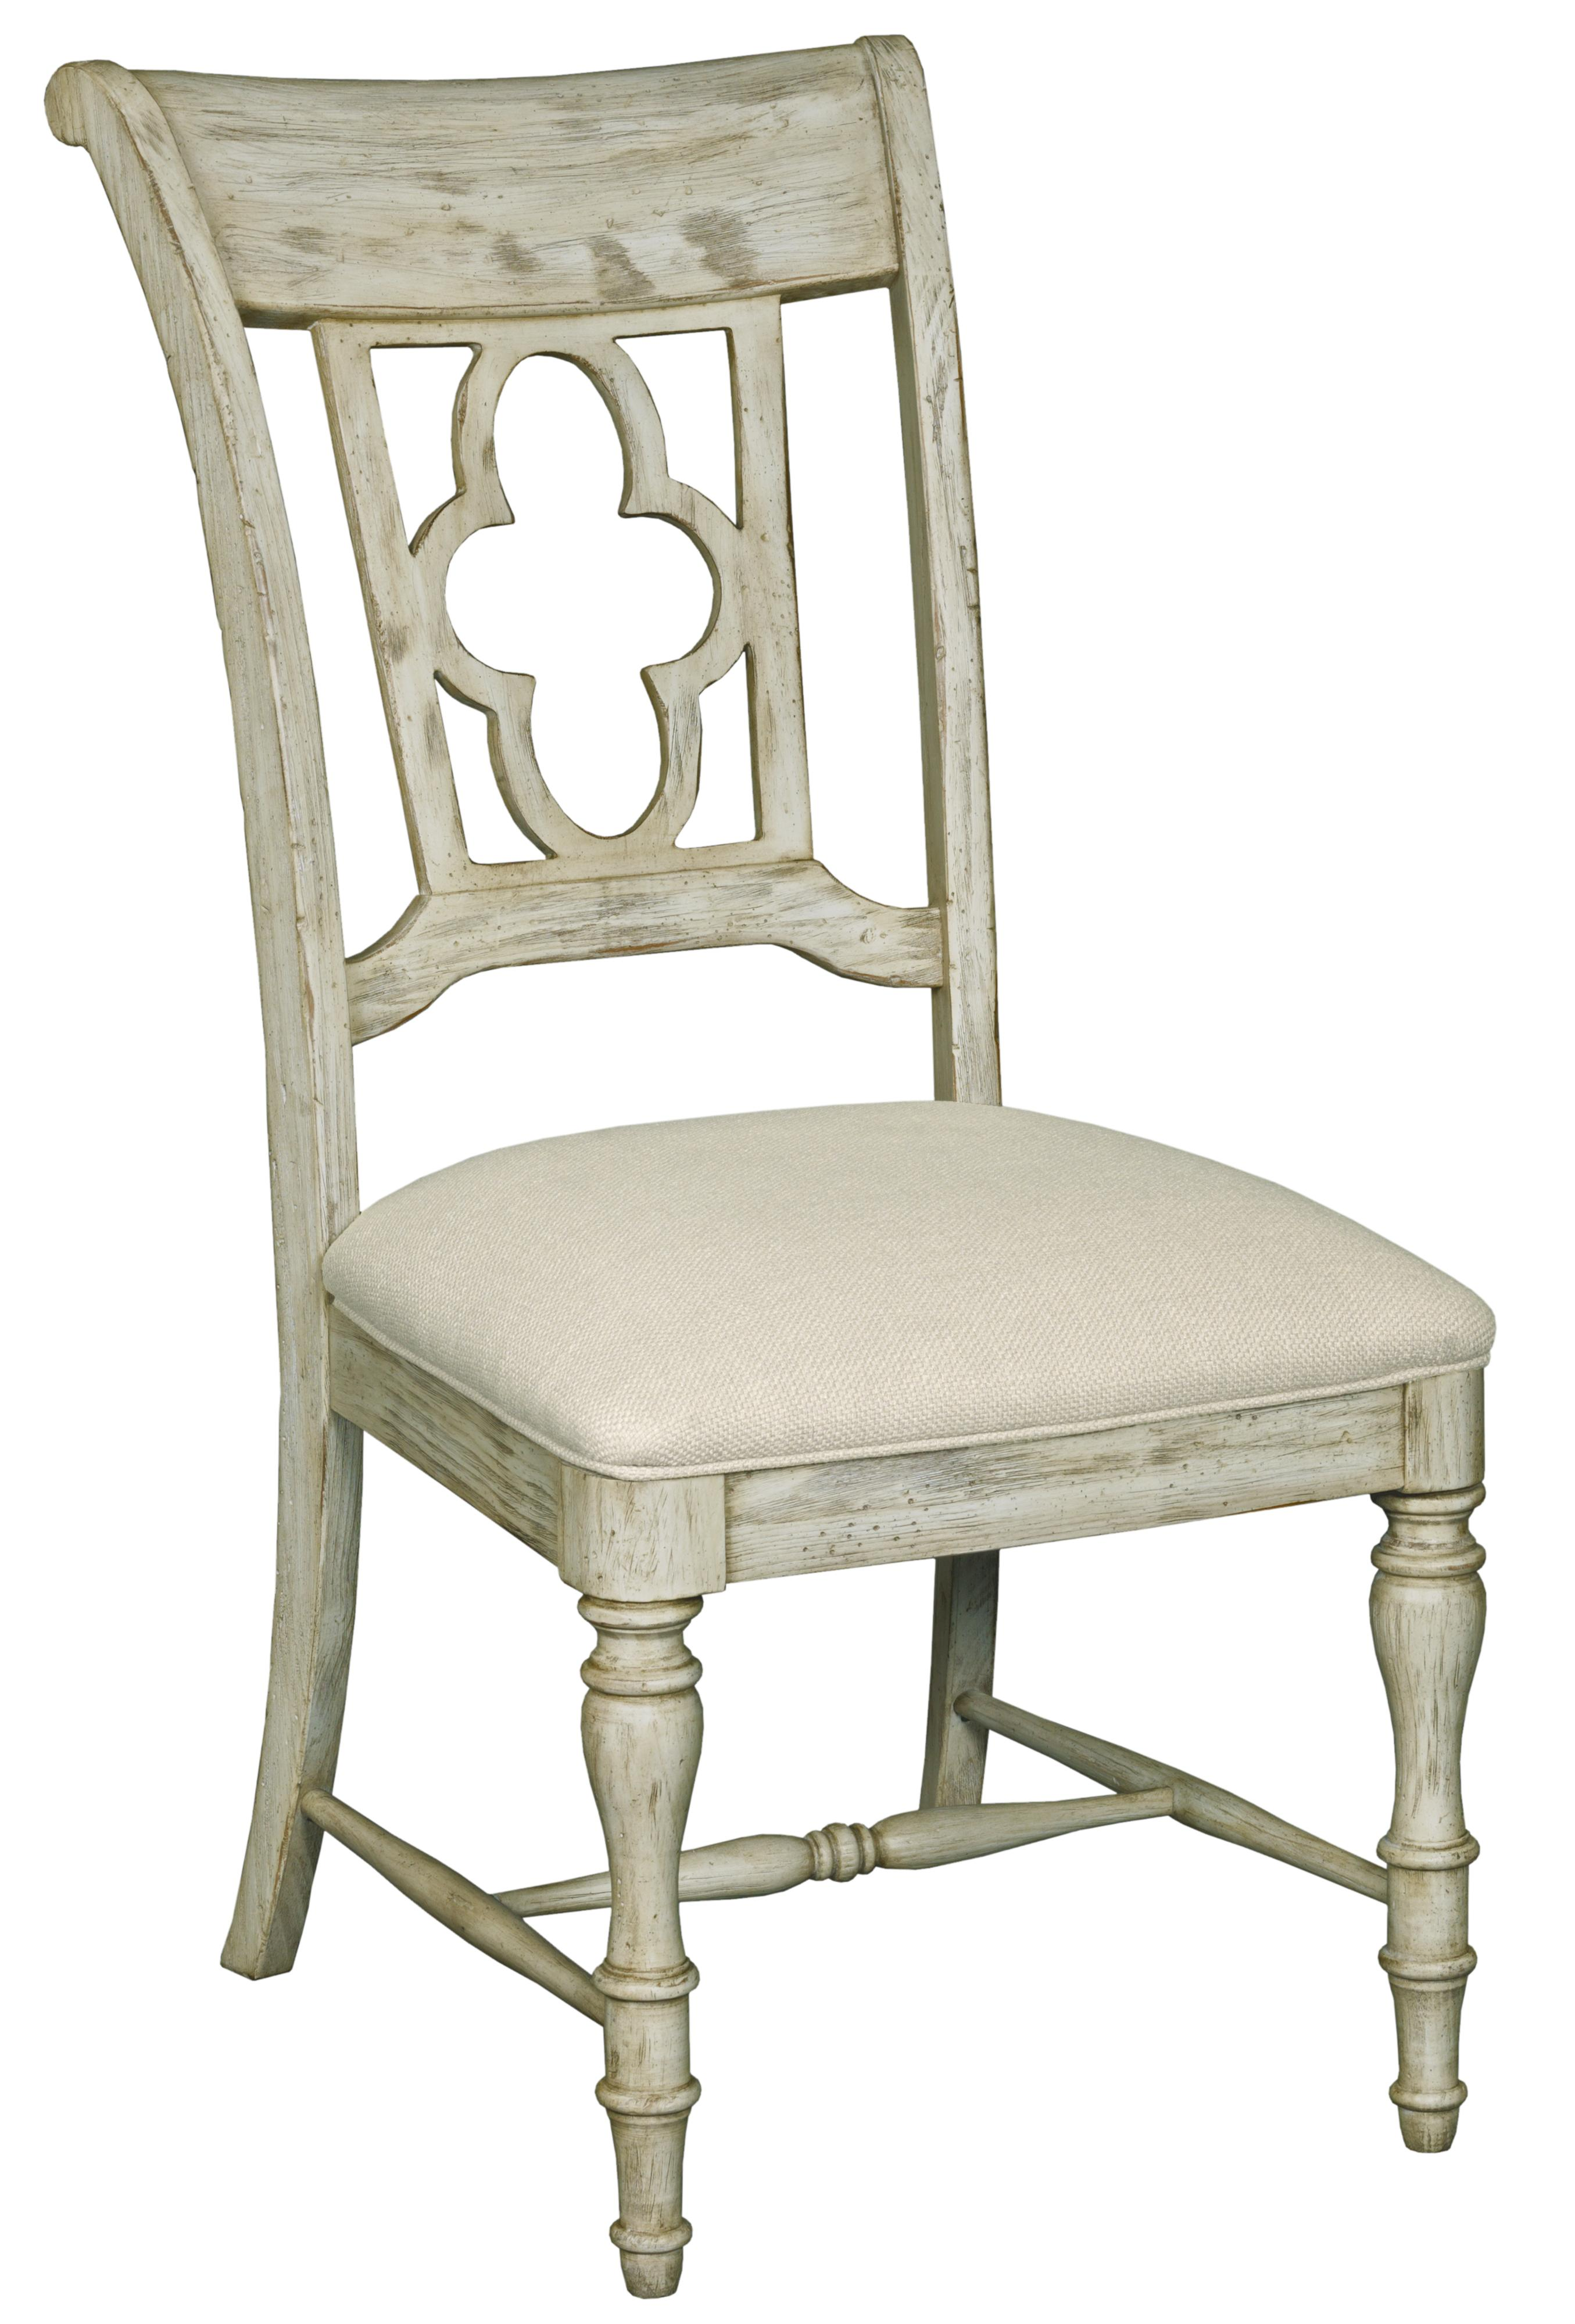 5 Piece Dining Set With Pedestal Table And Quatrefoil Back Chairs By Kincaid Furniture Wolf